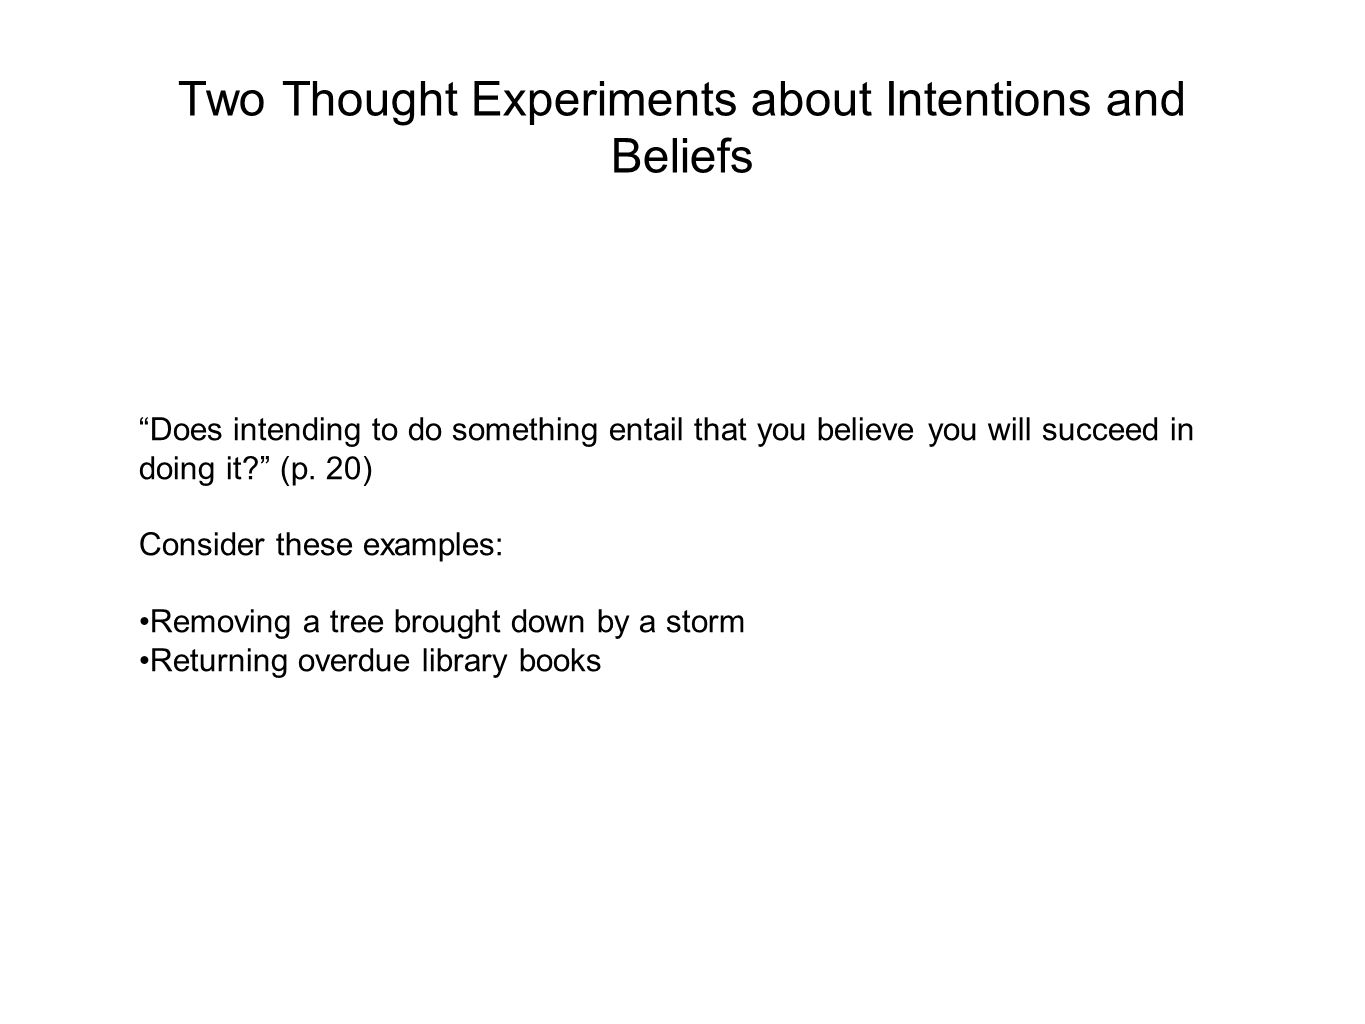 Two Thought Experiments about Intentions and Beliefs